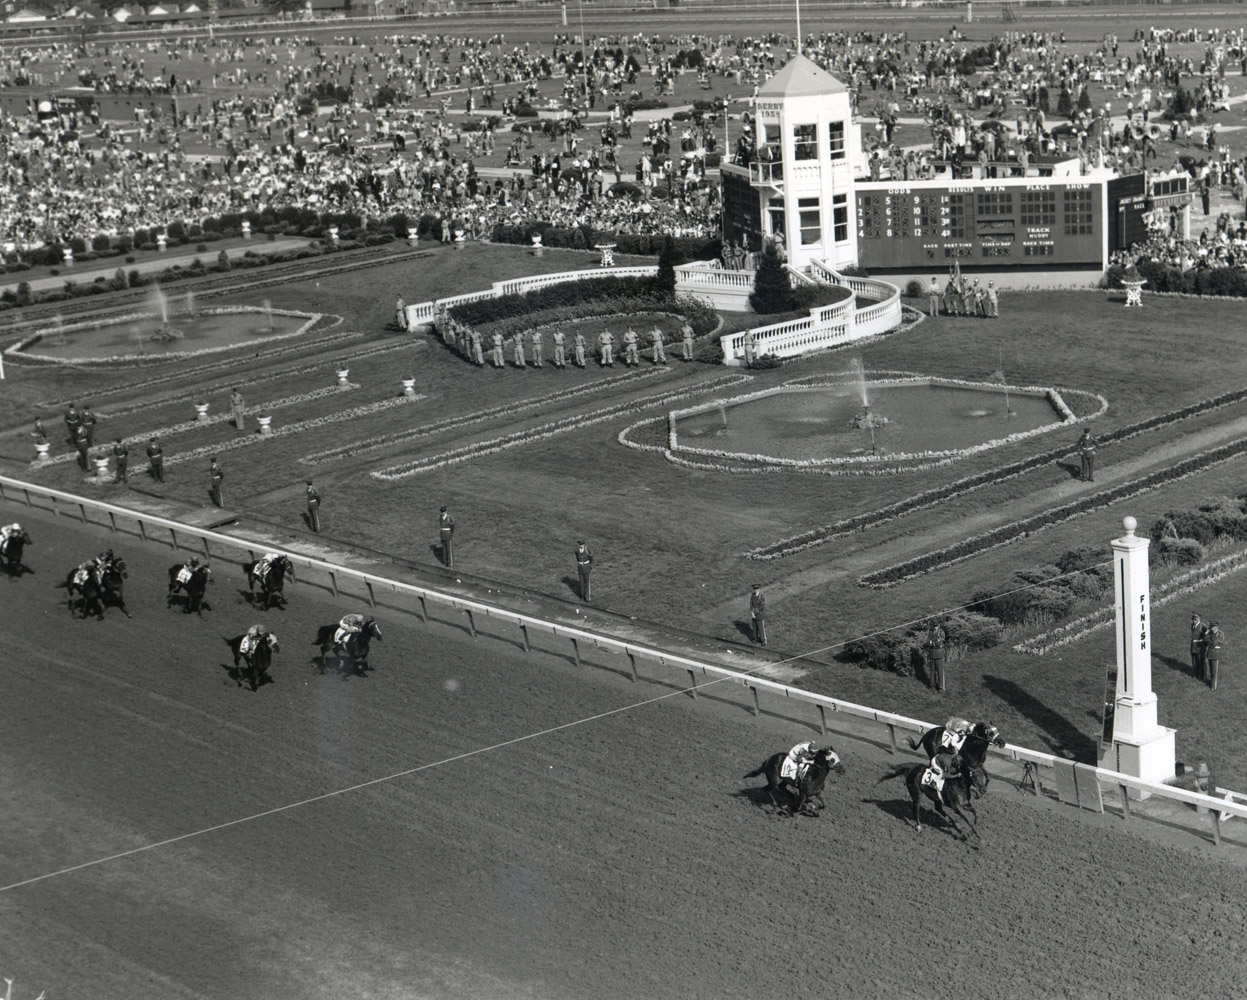 Tim Tam (Ismael Valenzuela up) winning the 1958 Derby at Churchill Downs (Churchill Downs Inc./Kinetic Corp. /Museum Collection)